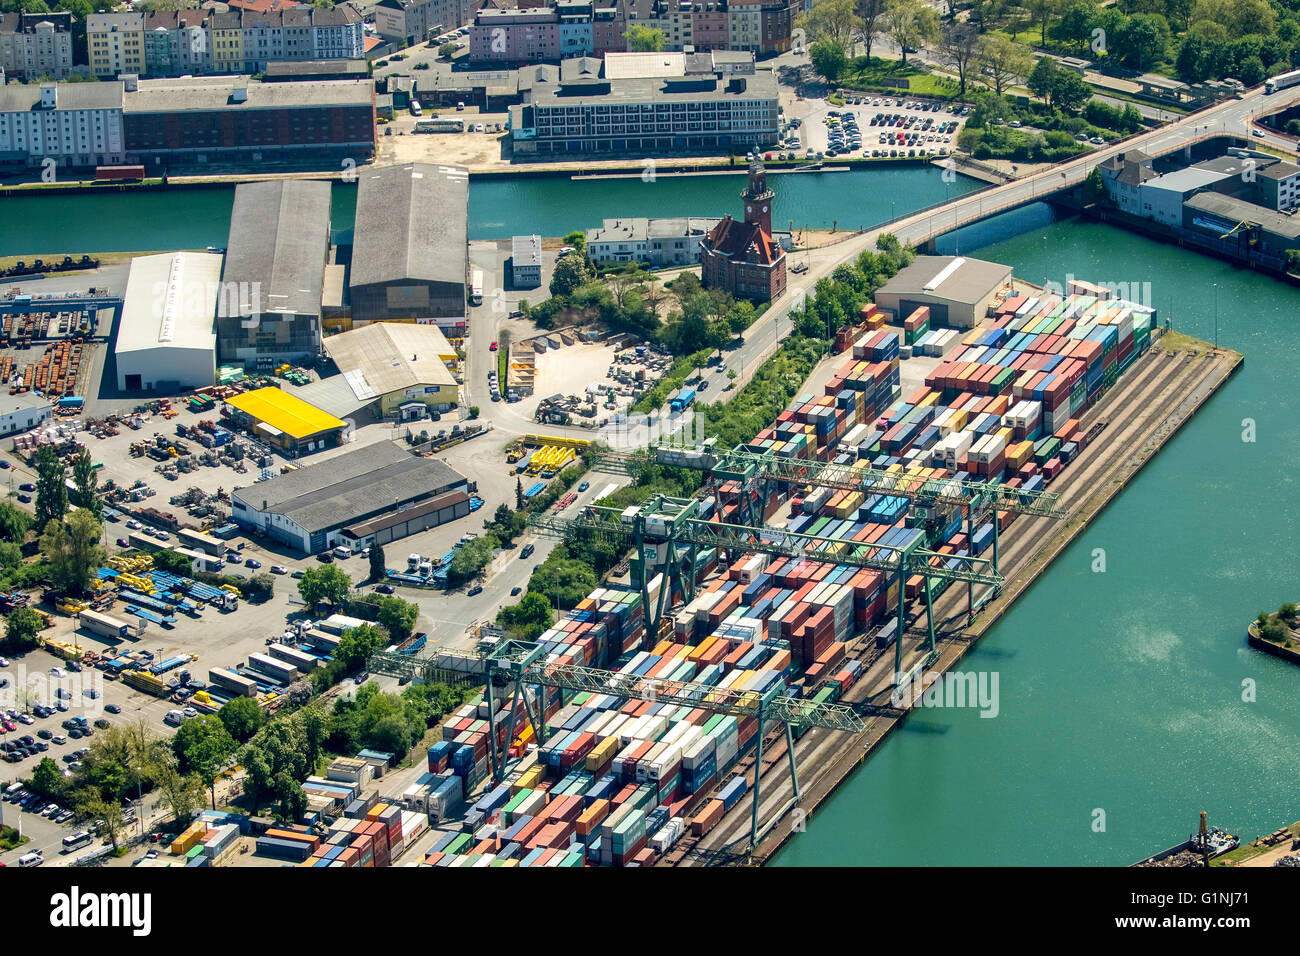 Aerial view, Dortmunder port, inland port, aged Port Authority, Dortmund-Ems Canal, container port, the Port of - Stock Image